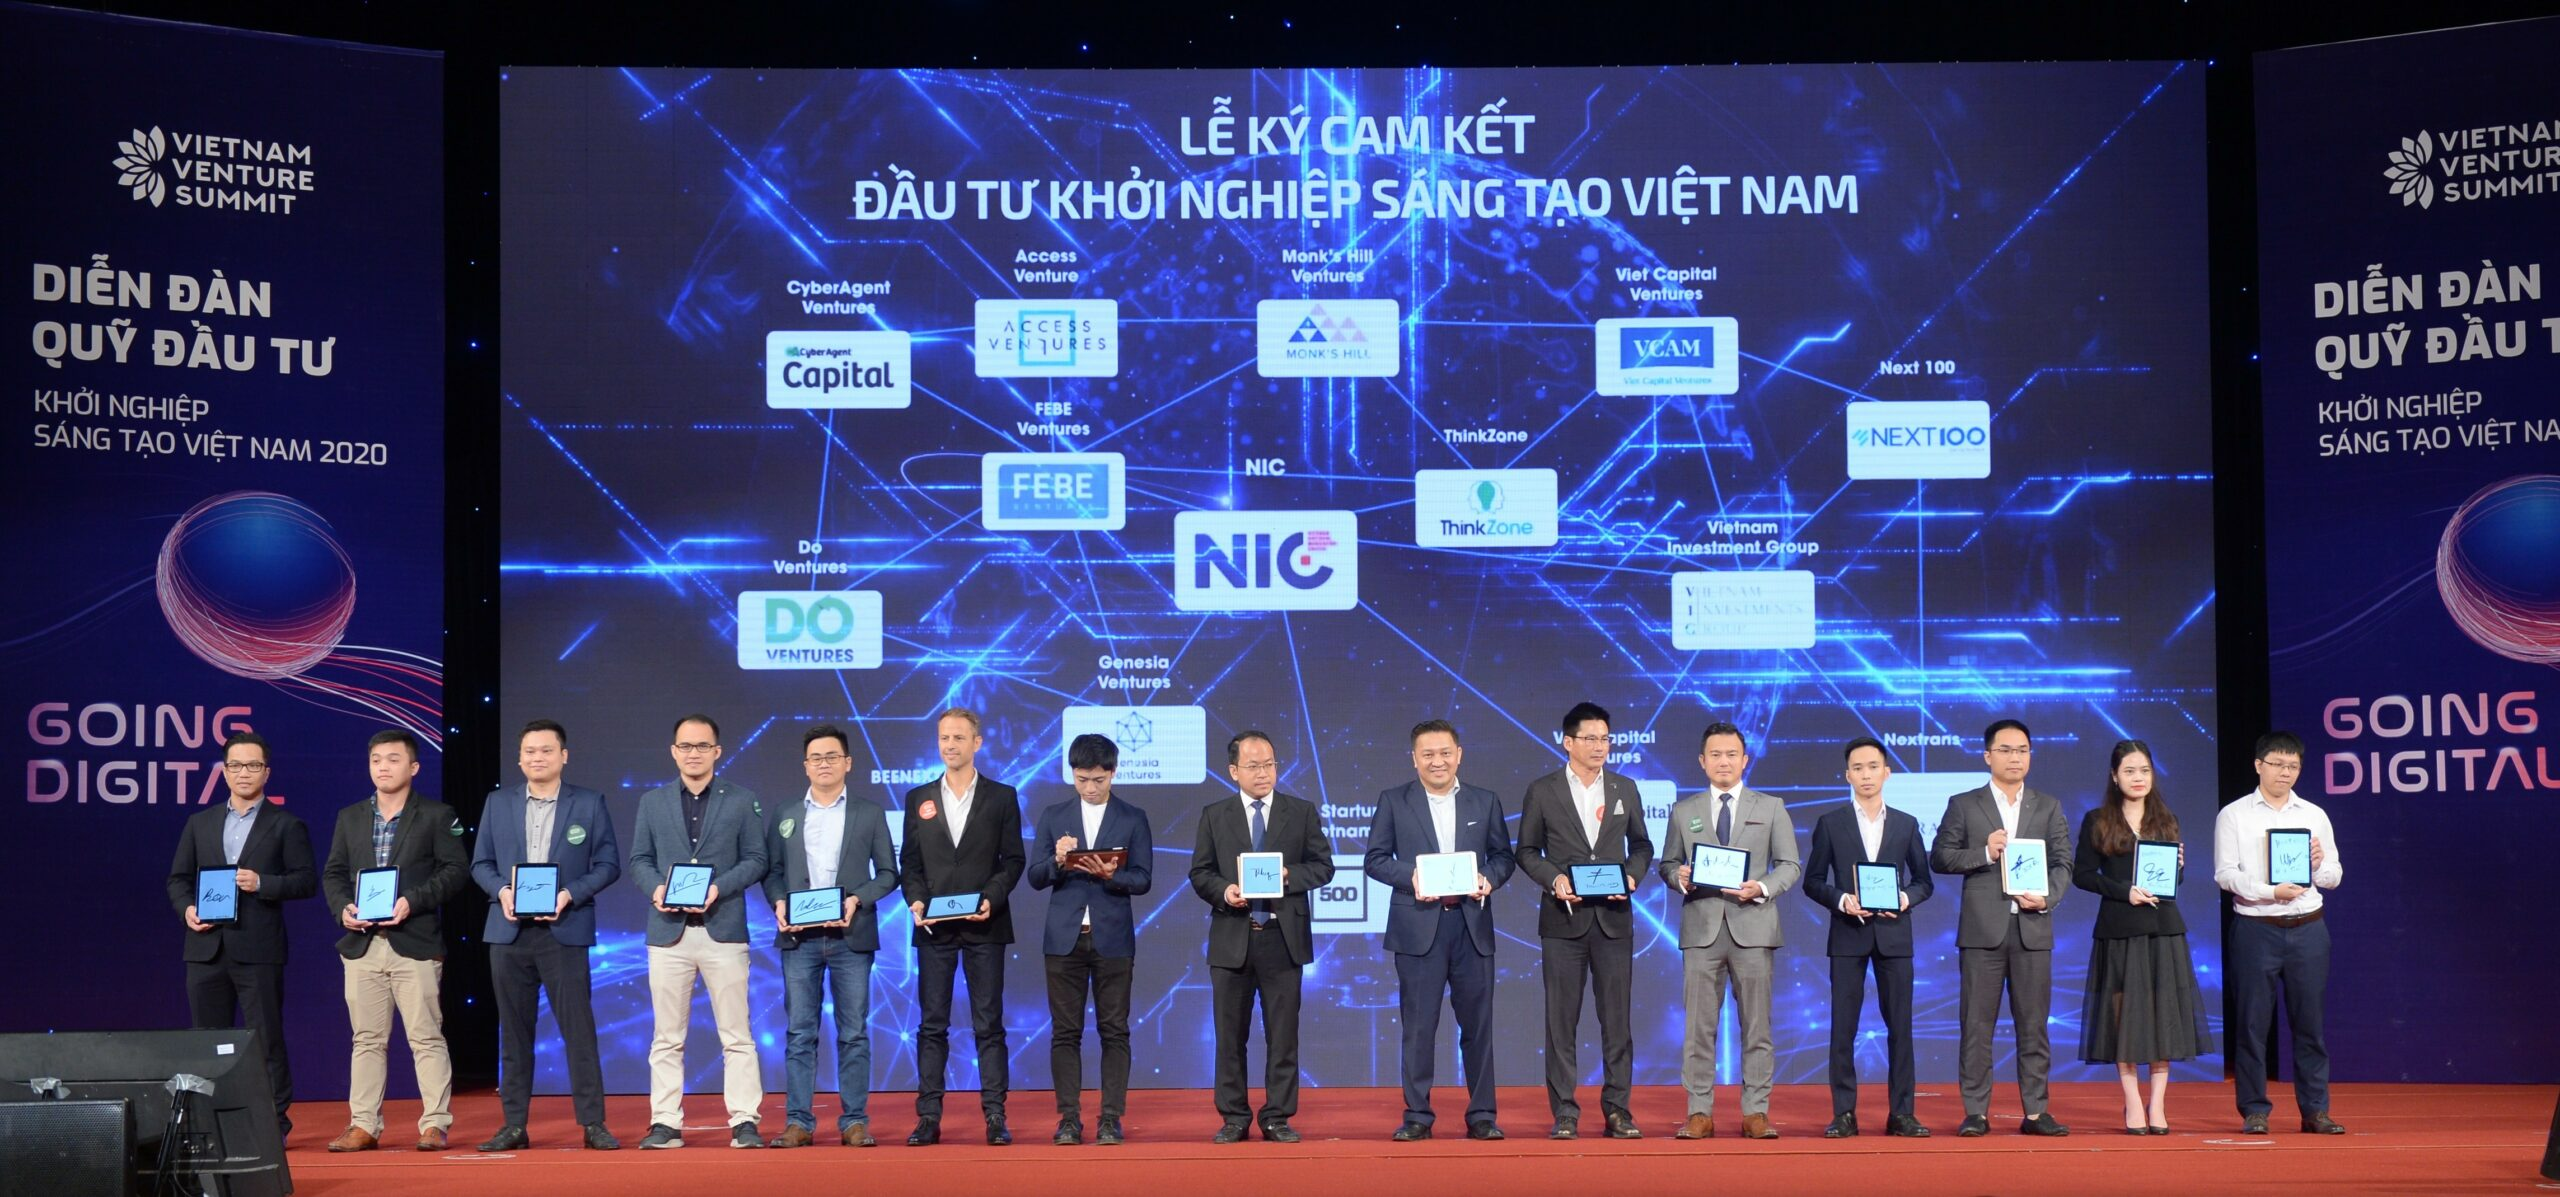 Photo: 33 investment funds committed to invest $815M in Vietnamese startups through 2025. 500 Startups Vietnam represented by General Partner Binh Tran (first person from left)